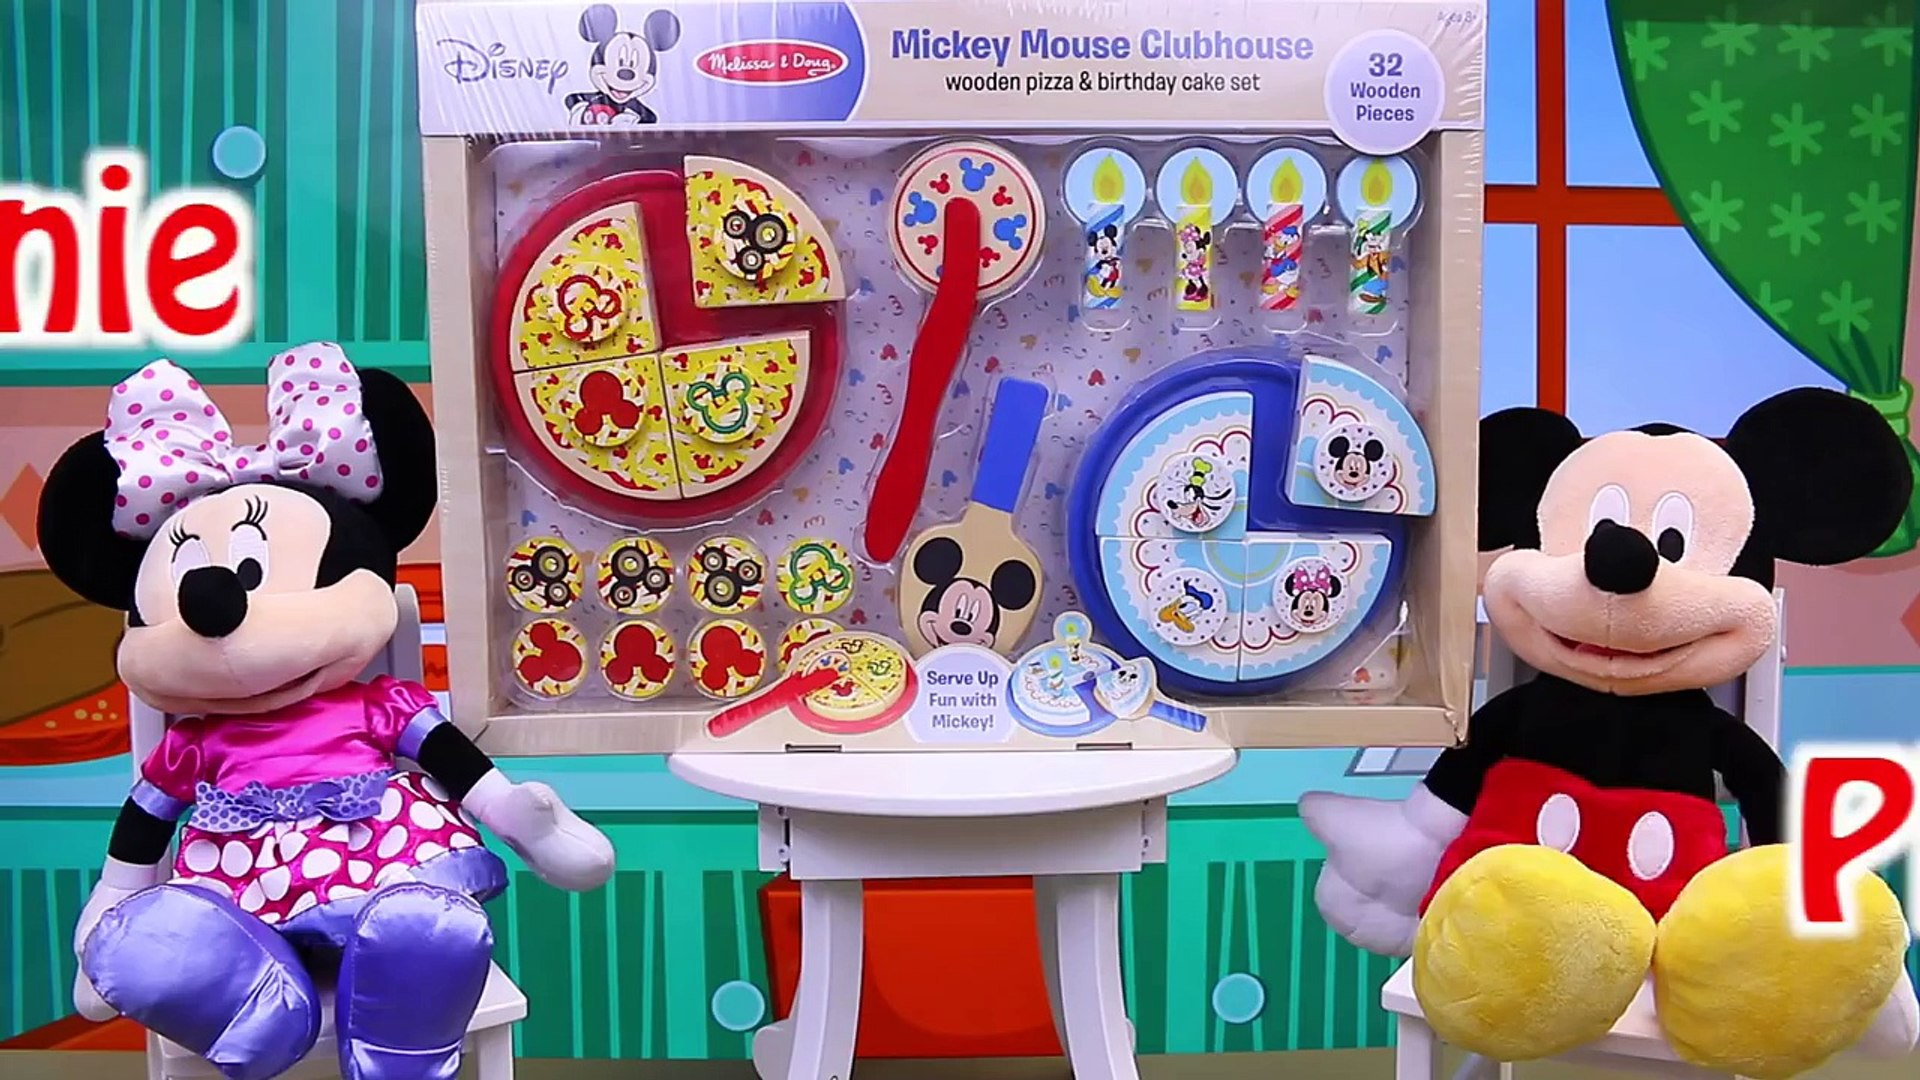 Mickey Mouse Clubhouse Melissa Doug Wooden Pizza Birthday Cake Minnie Mouse Surprise Presents